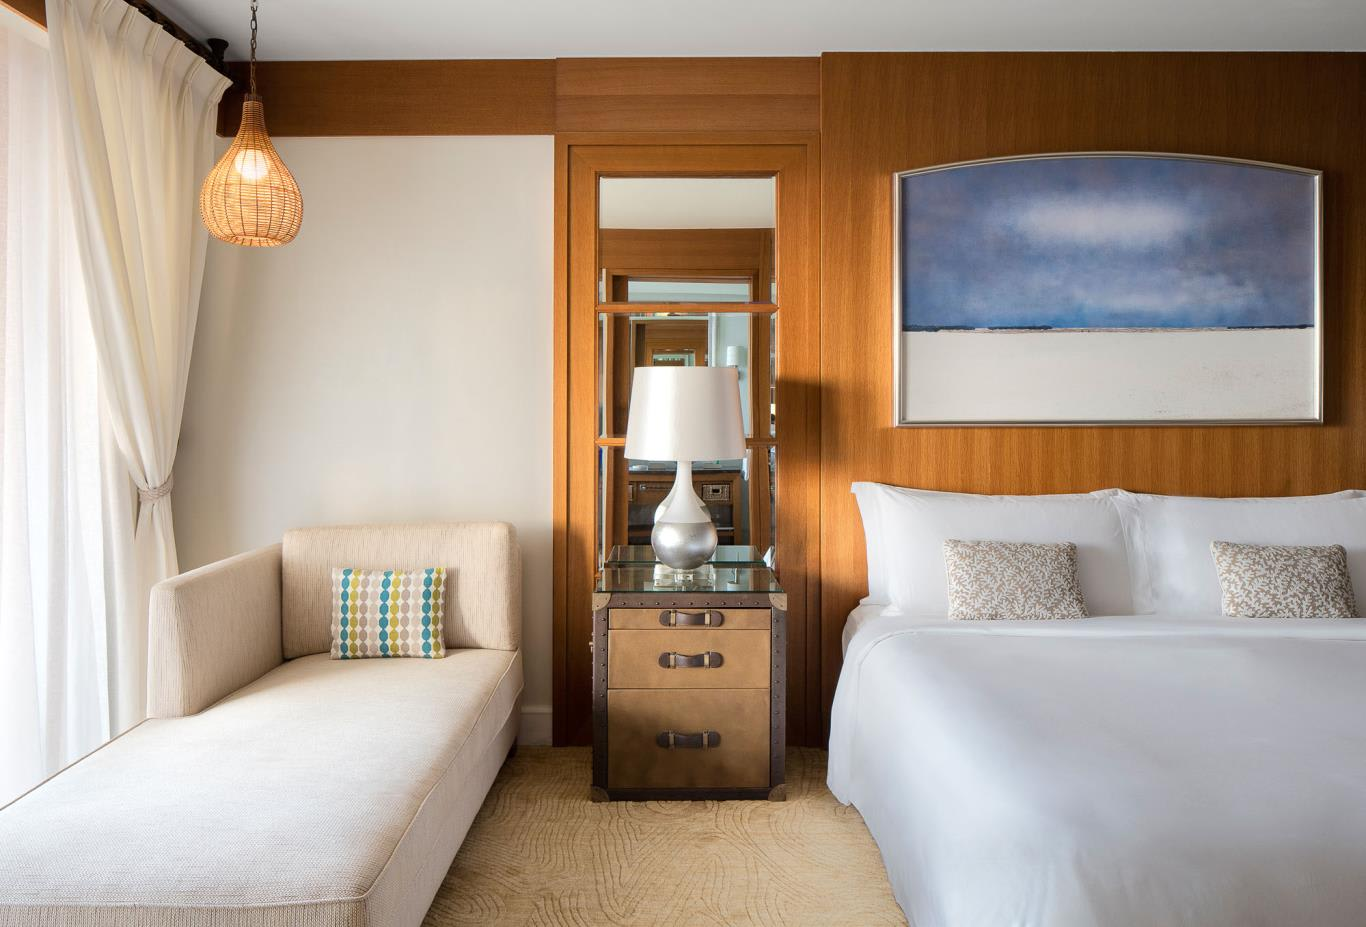 Premium Sea View Room twin beds